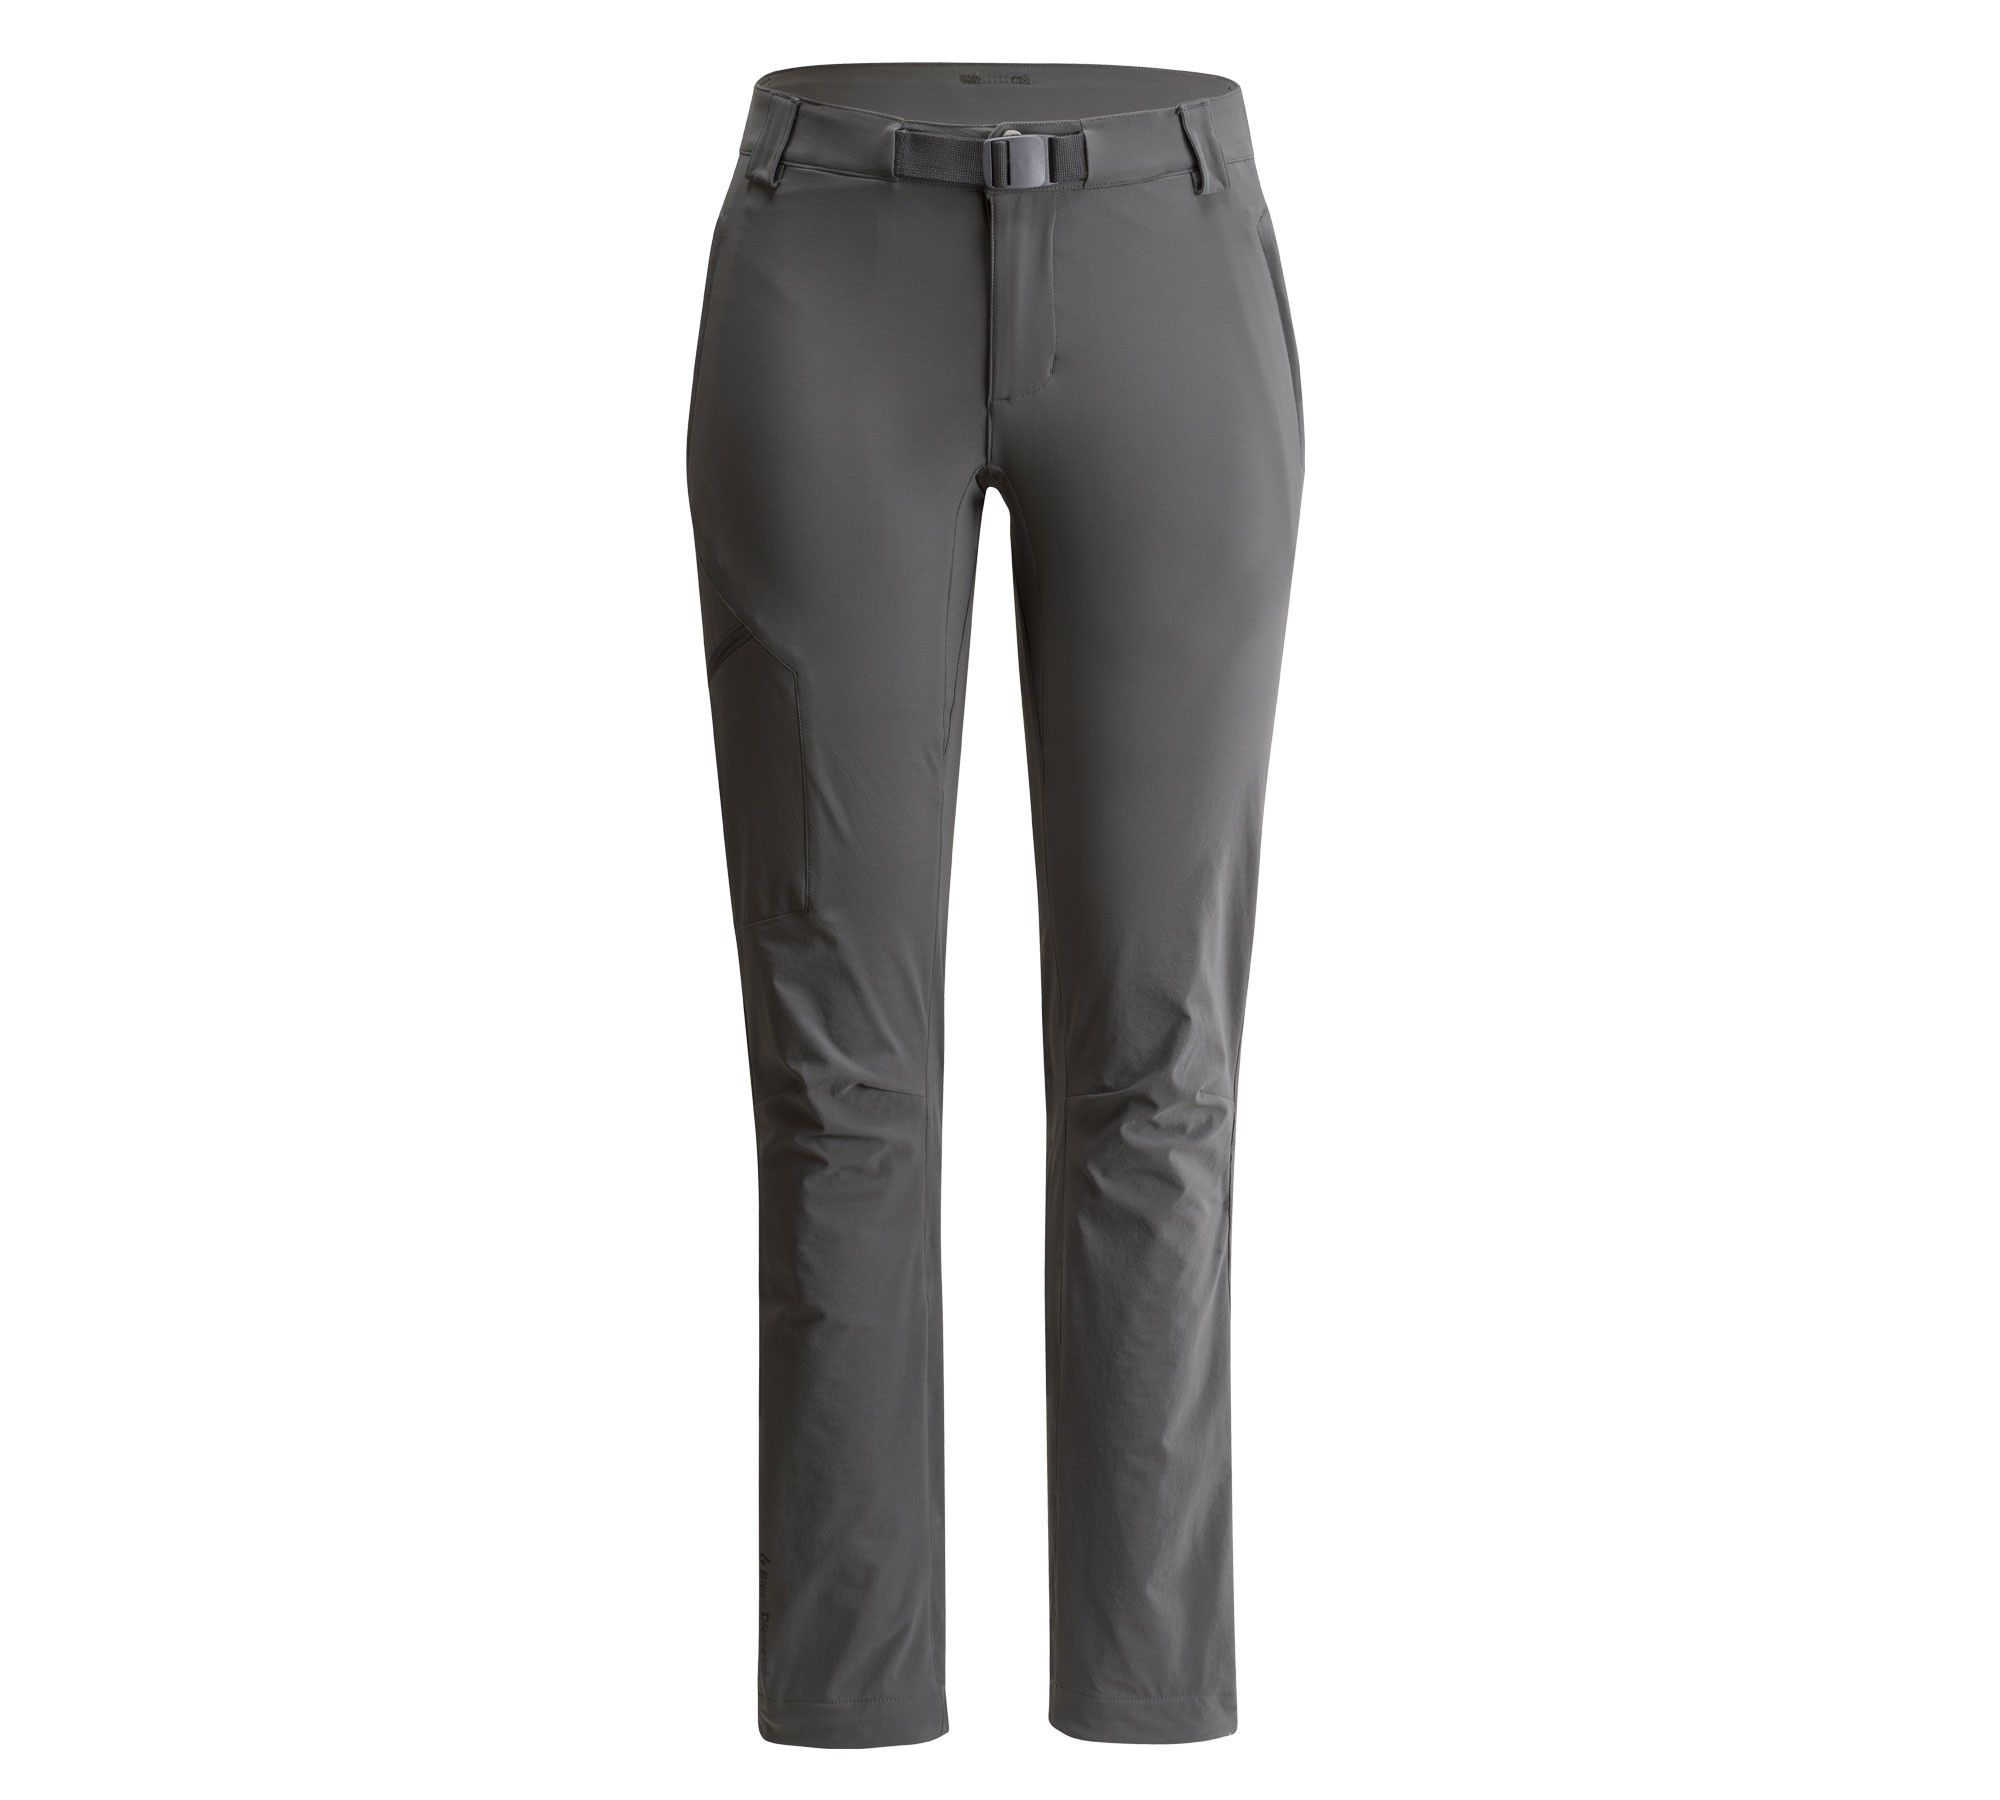 Black Diamond Alpine Pant Grau, Female Hose, S